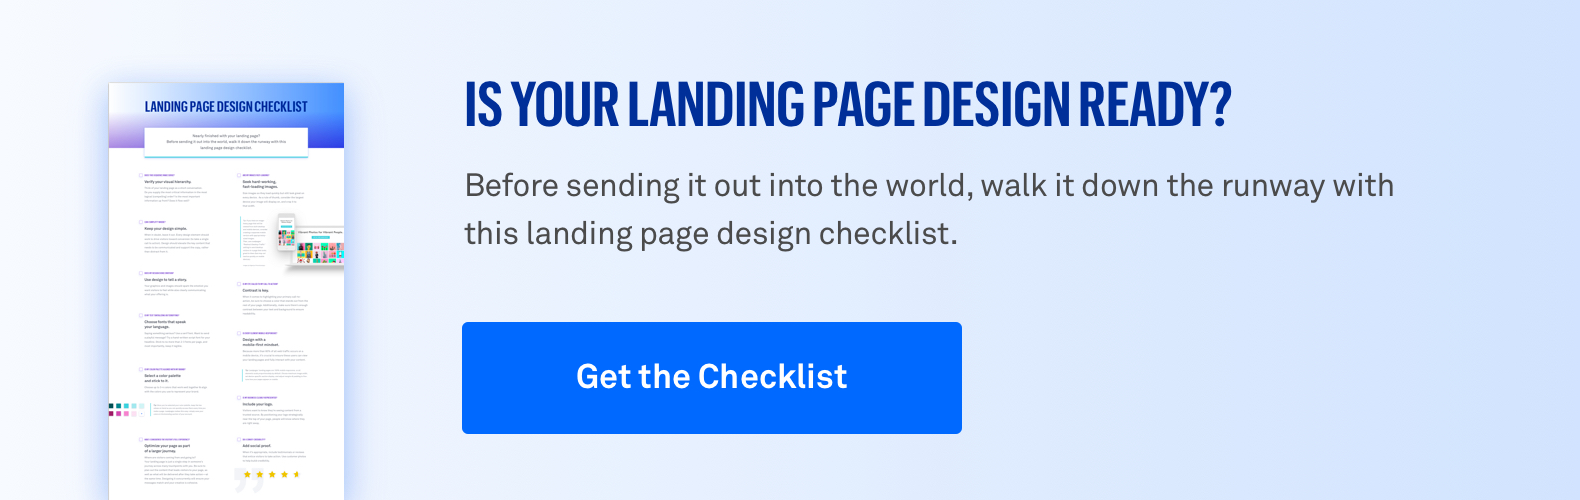 Get the Landing Page Design Checklist